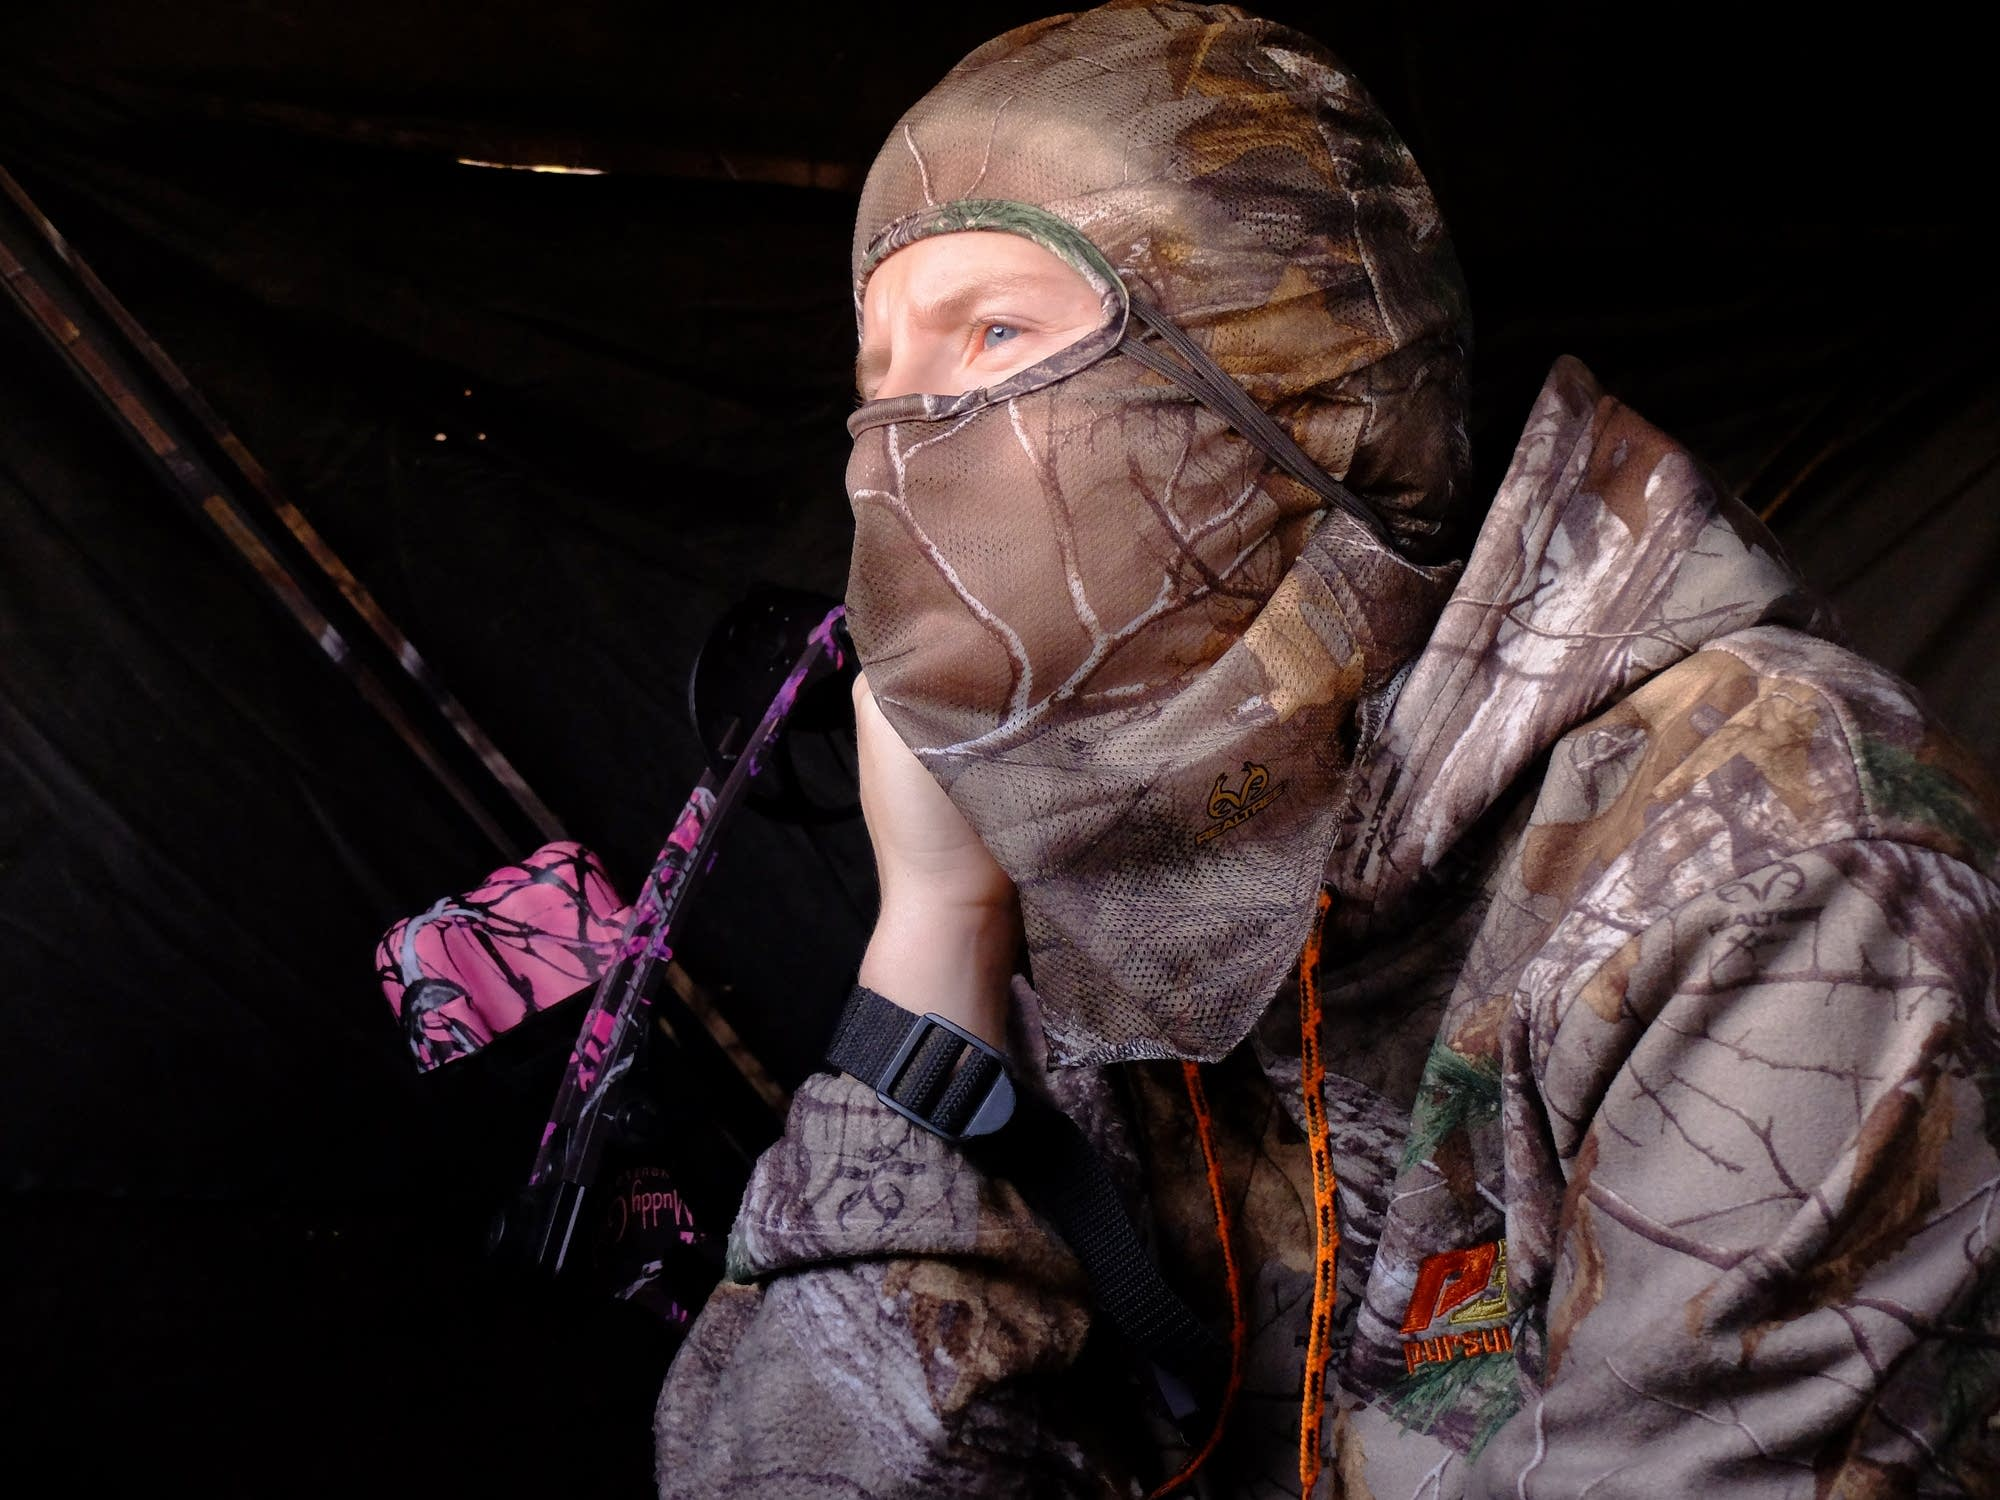 Misty Stoll scans the area as she waits for a deer to pass her blind.